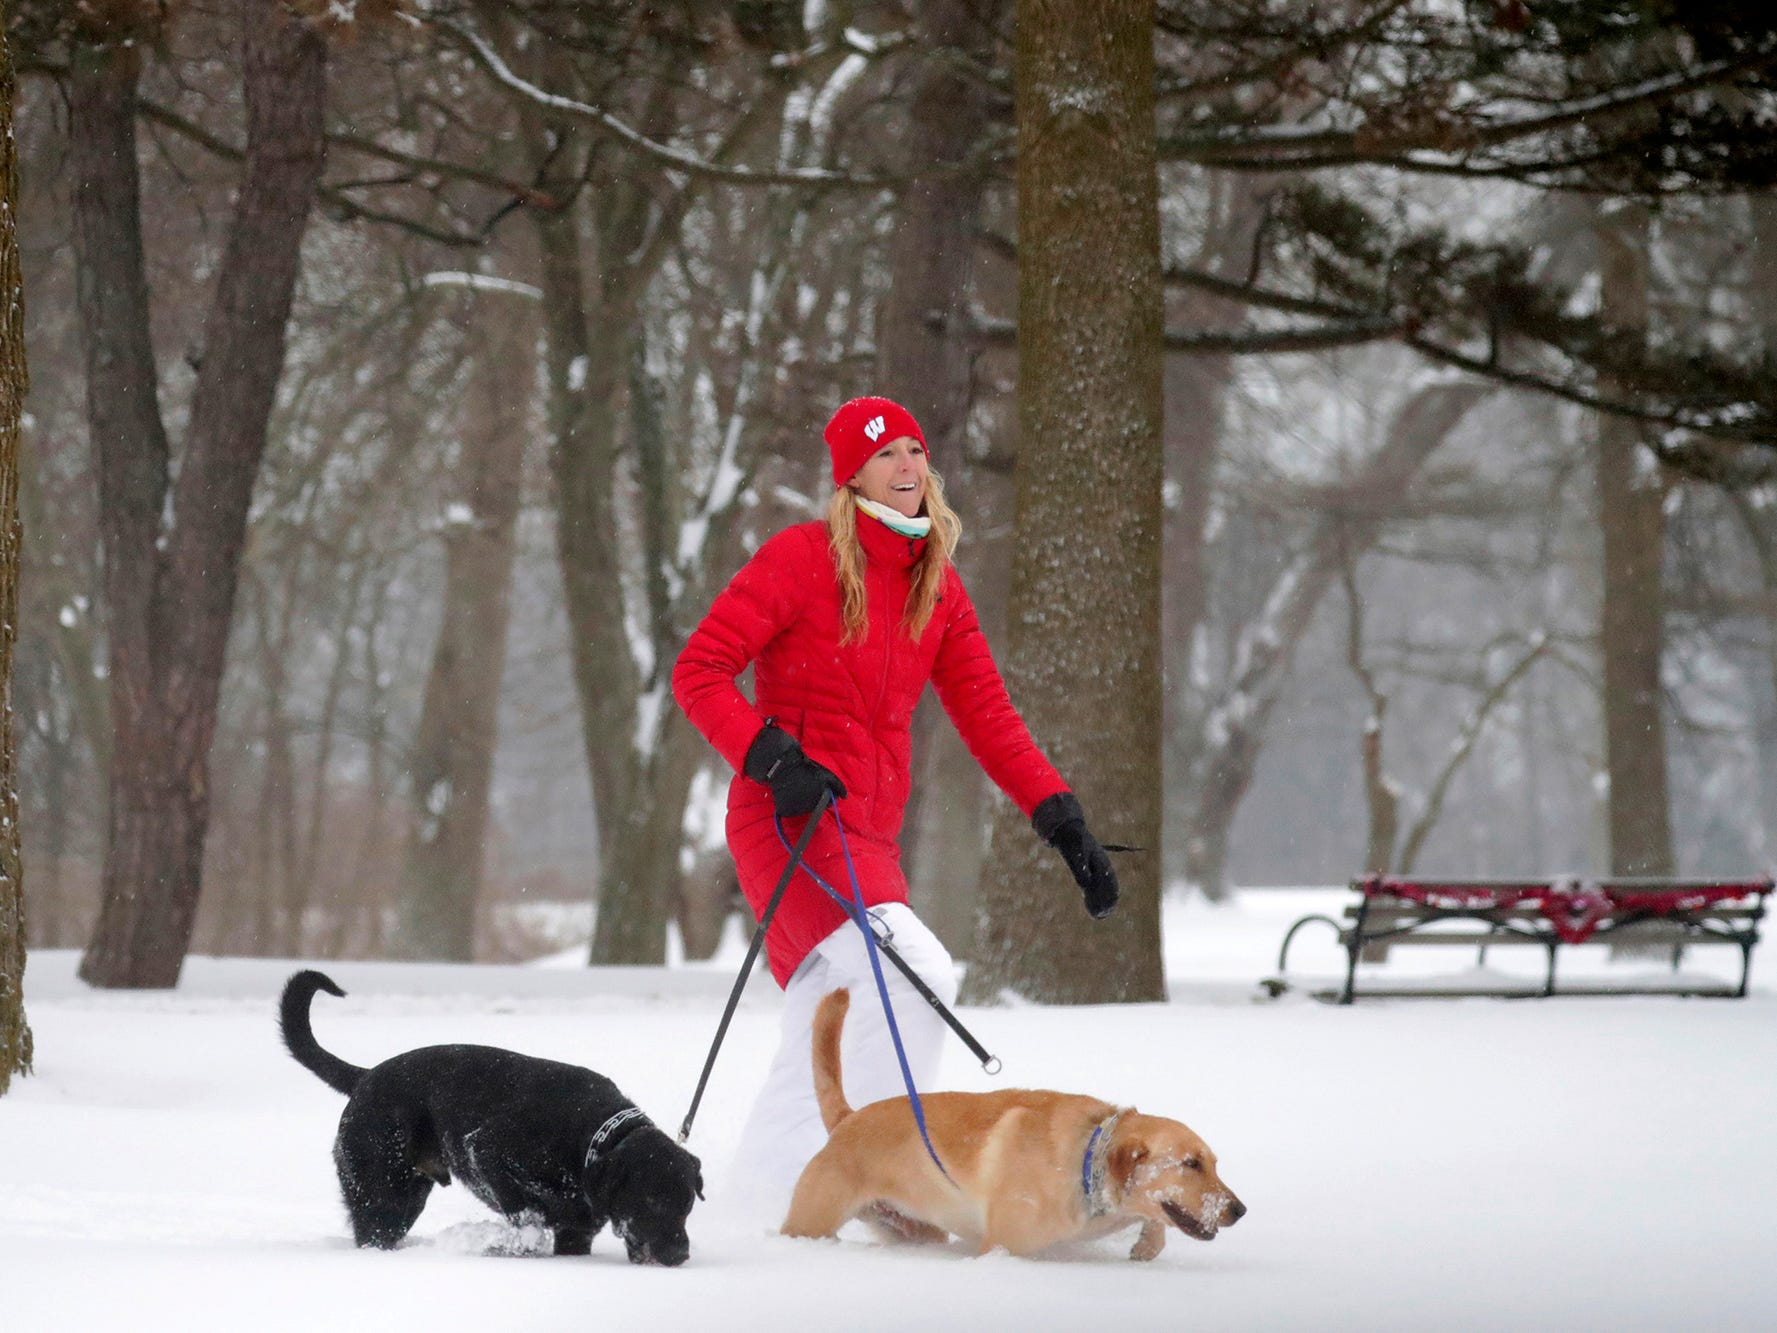 Mary Becker walks her dogs, Reggie, and Archie, at Lake Park near her home in Milwaukee on Jan. 28, 2019.